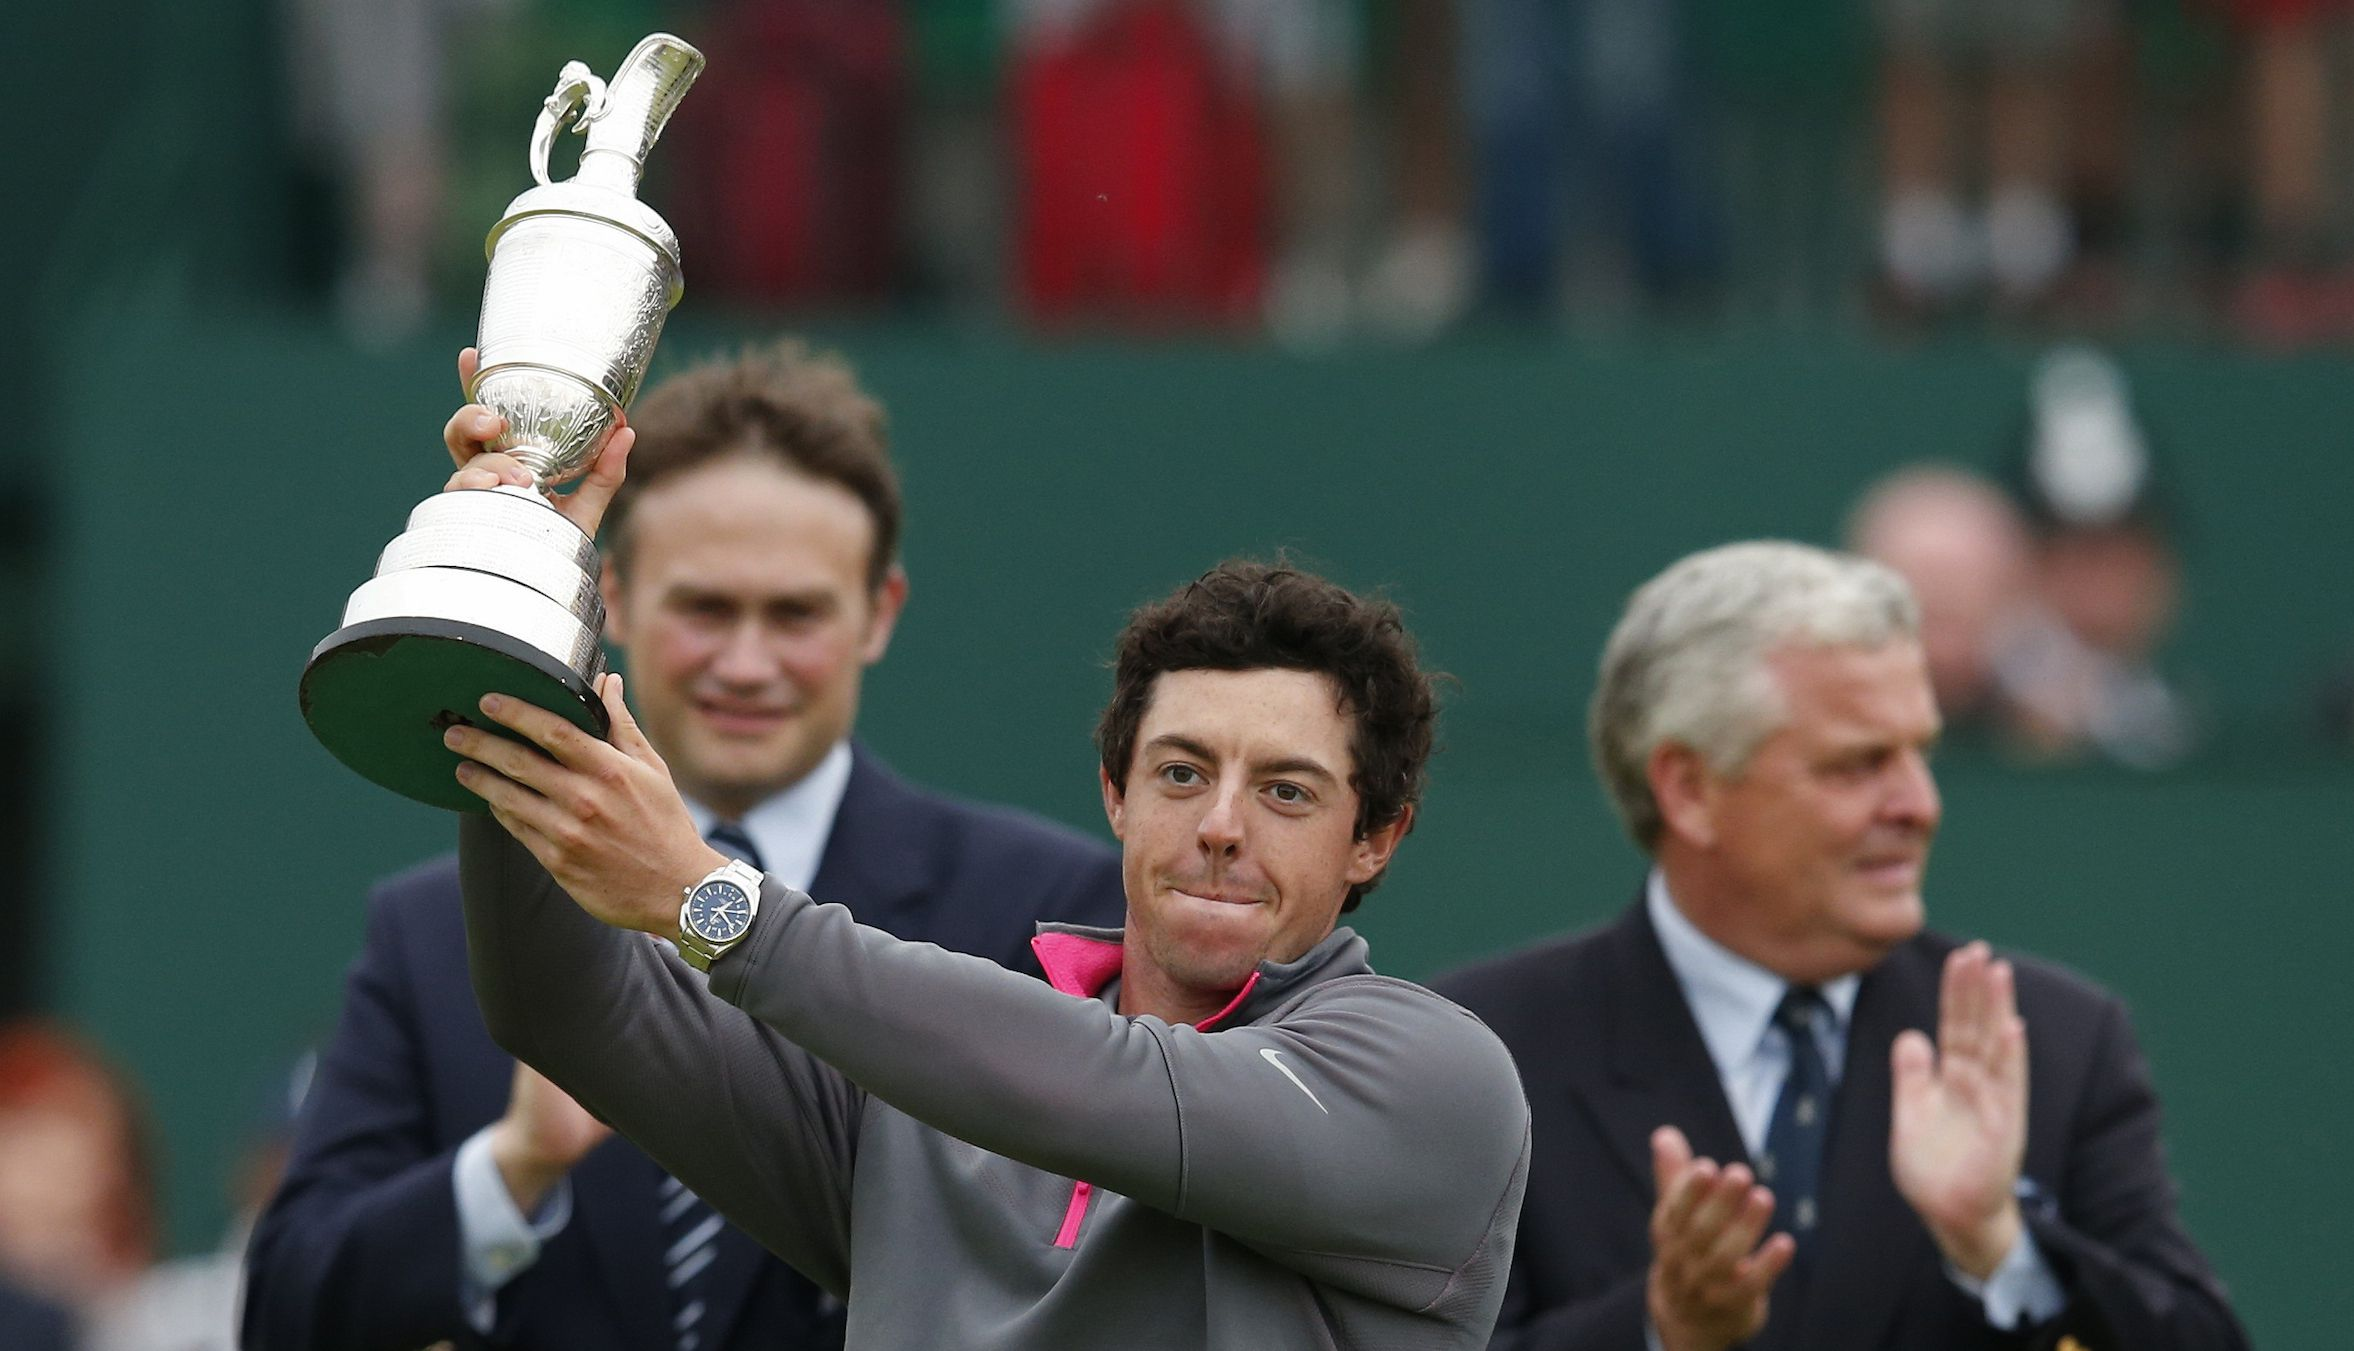 Rory McIlroy of Northern Ireland celebrates as he holds the Claret Jug after winning the British Open Championship at the Royal Liverpool Golf Club in Hoylake, northern England July 20, 2014. REUTERS/Cathal McNaughton (BRITAIN  - Tags: SPORT GOLF)   - RTR3ZFLZ